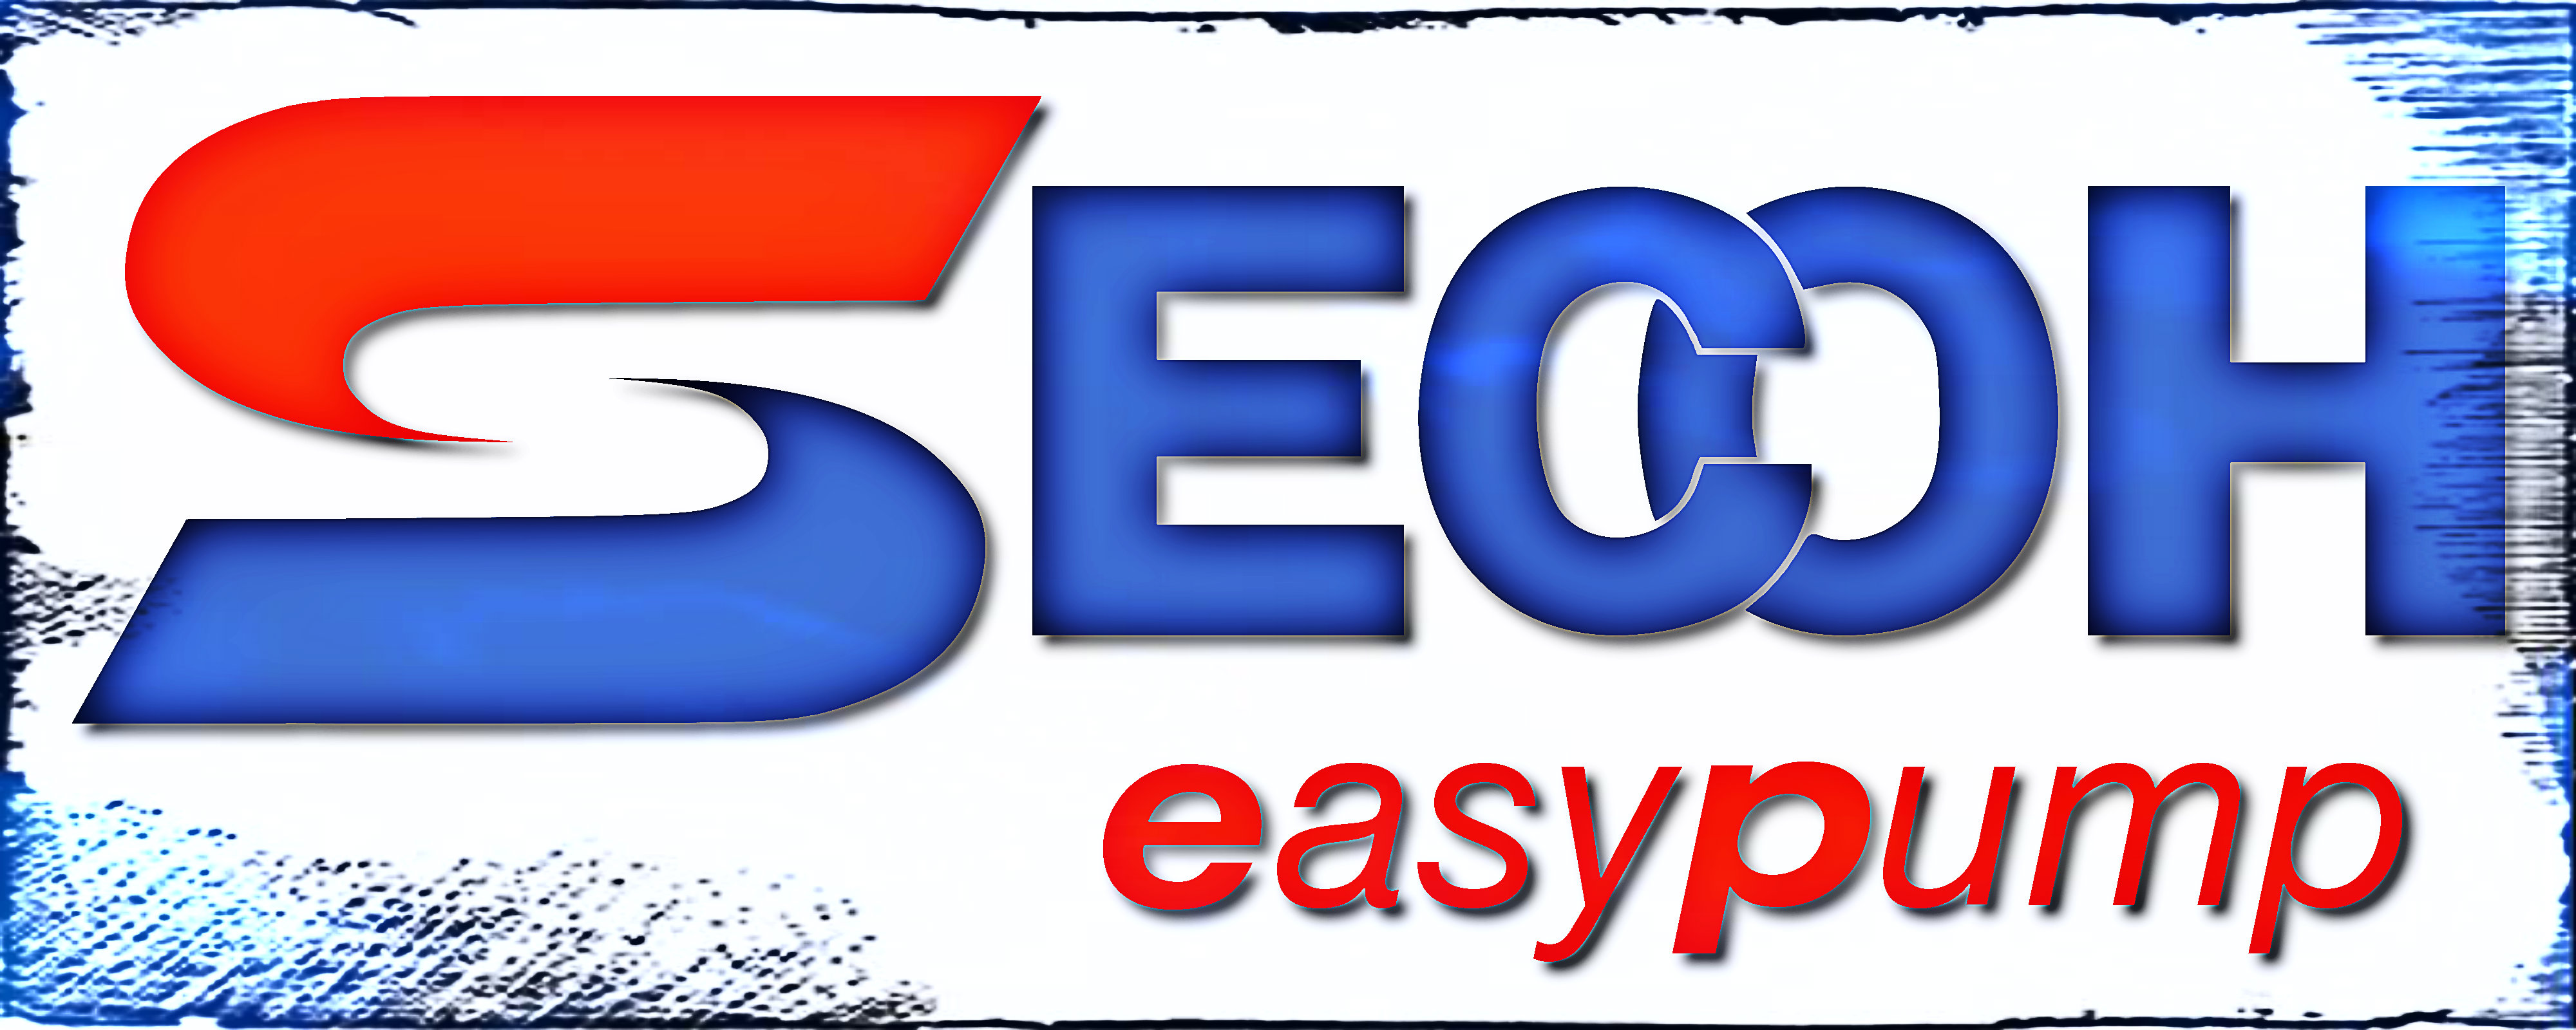 secoh-easypump-red-blue-shadow5.jpg